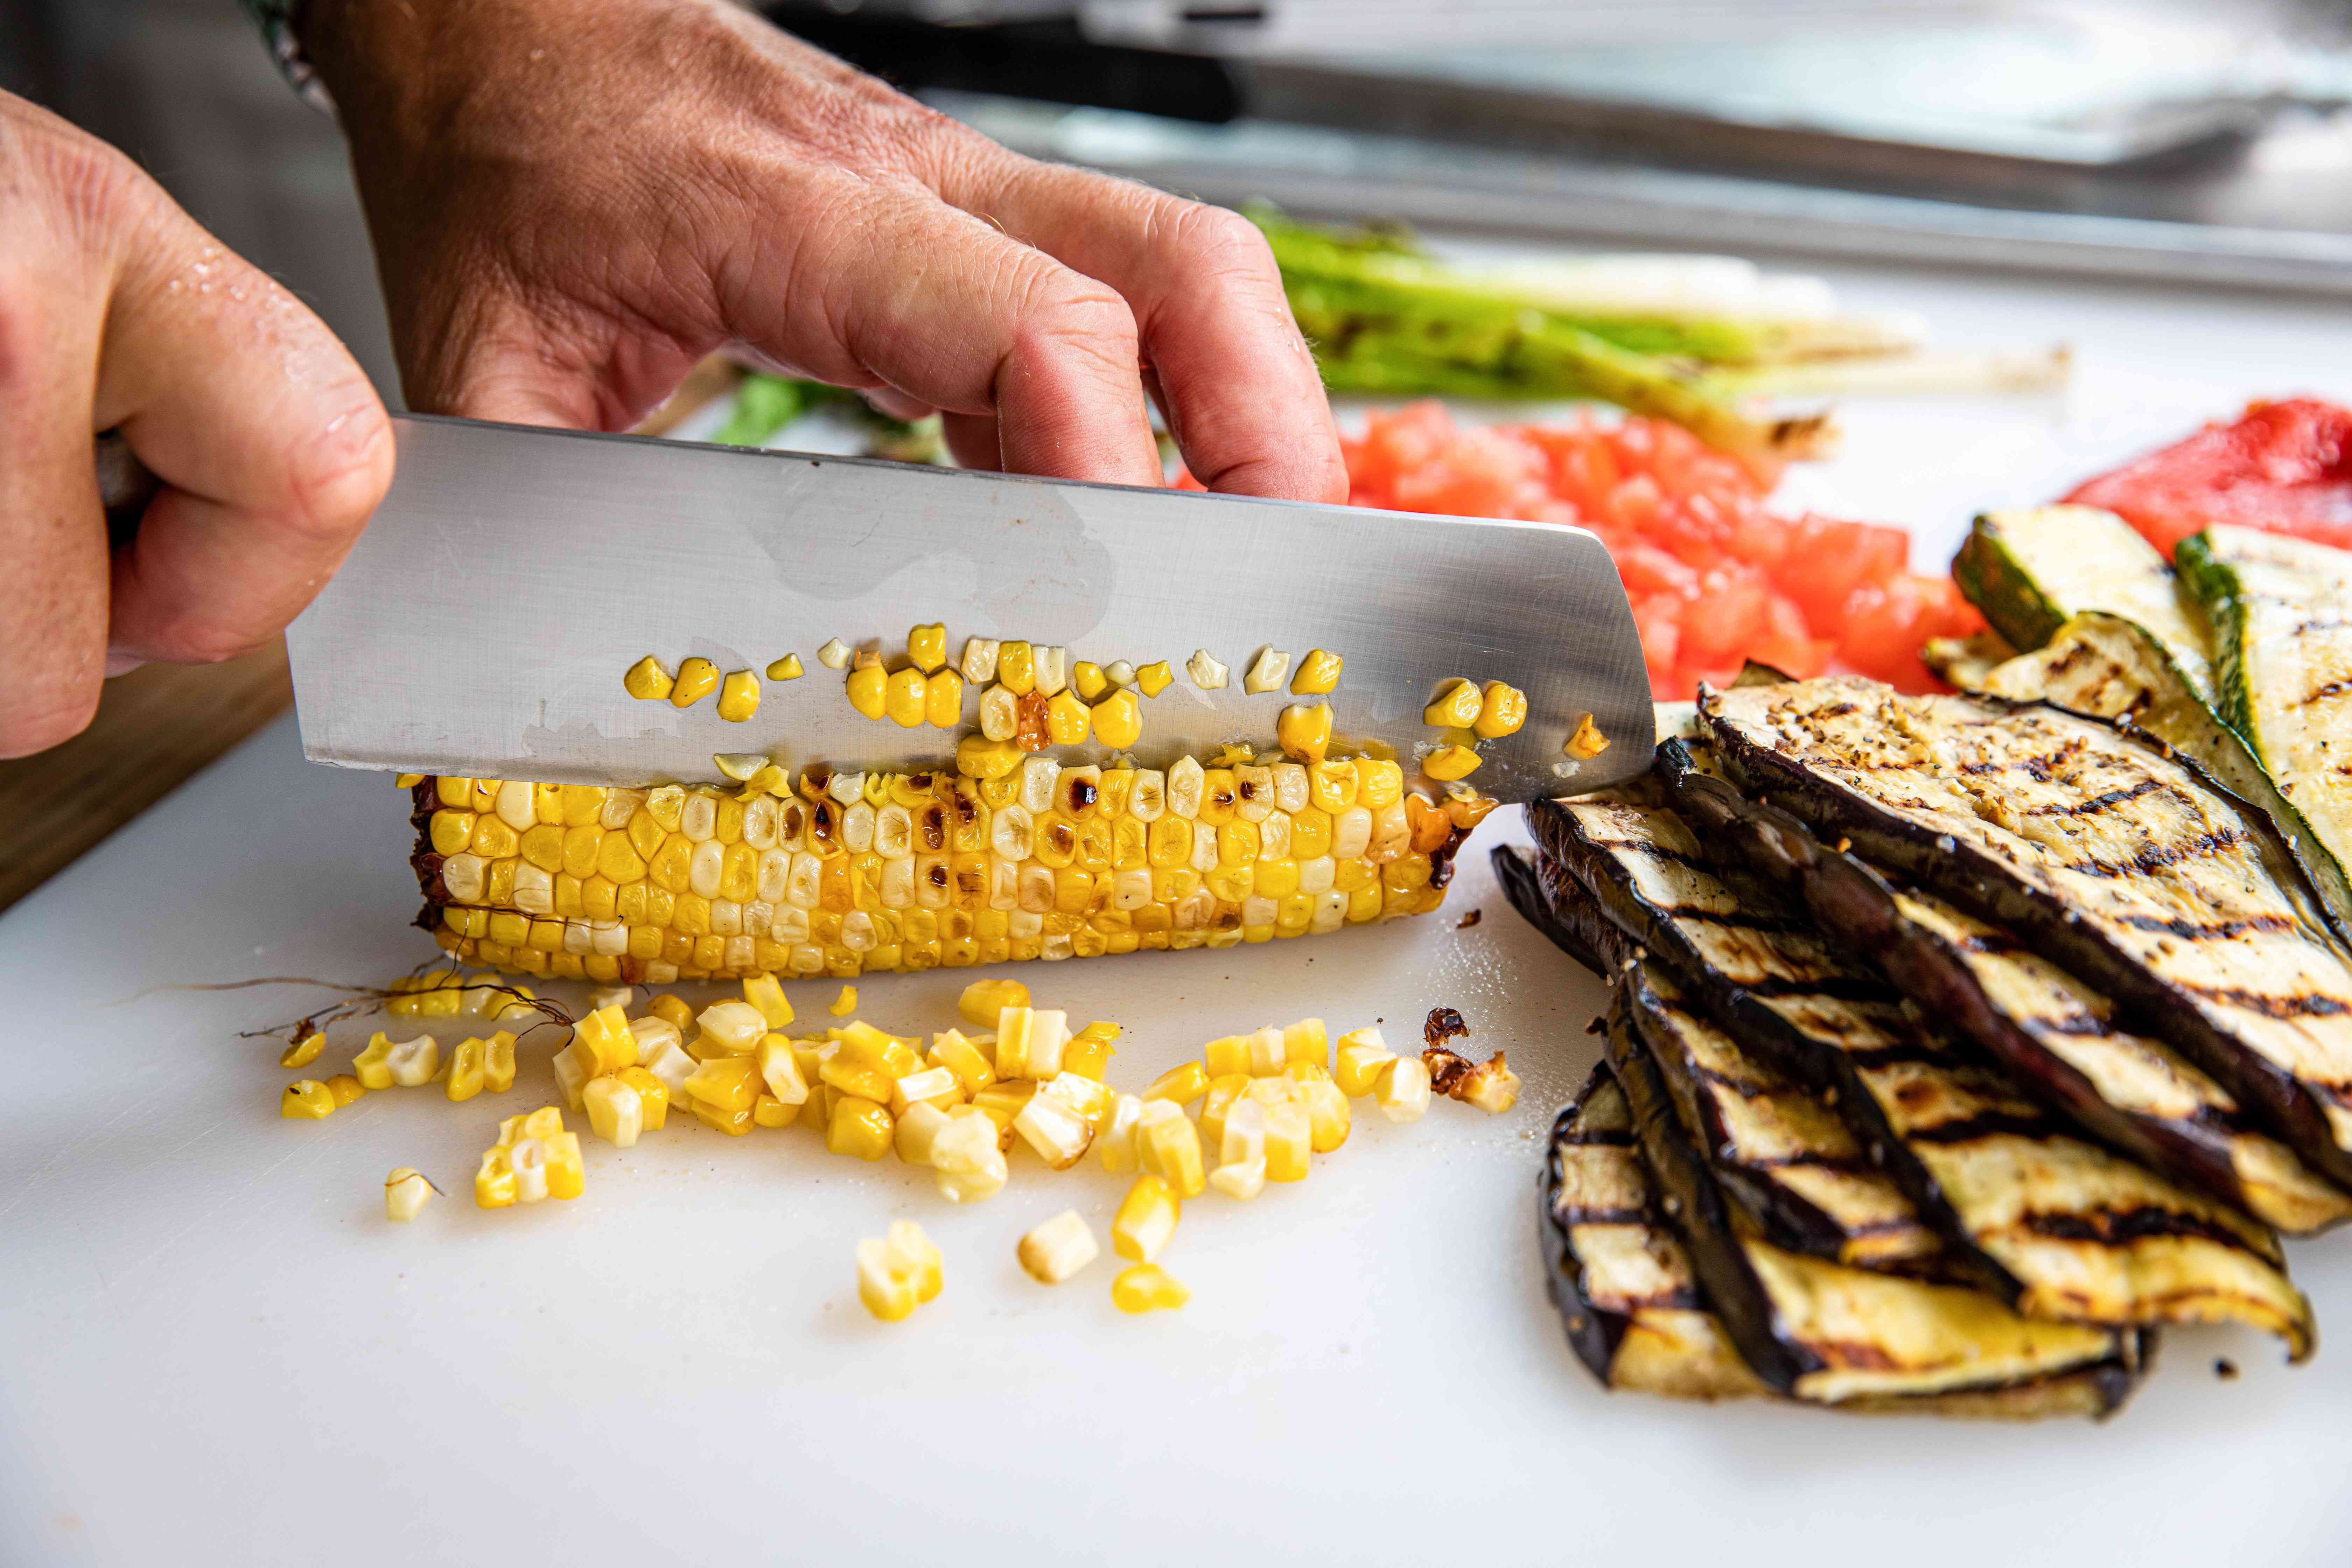 Cutting the kernels off a cob of corn for vegetable nachos.